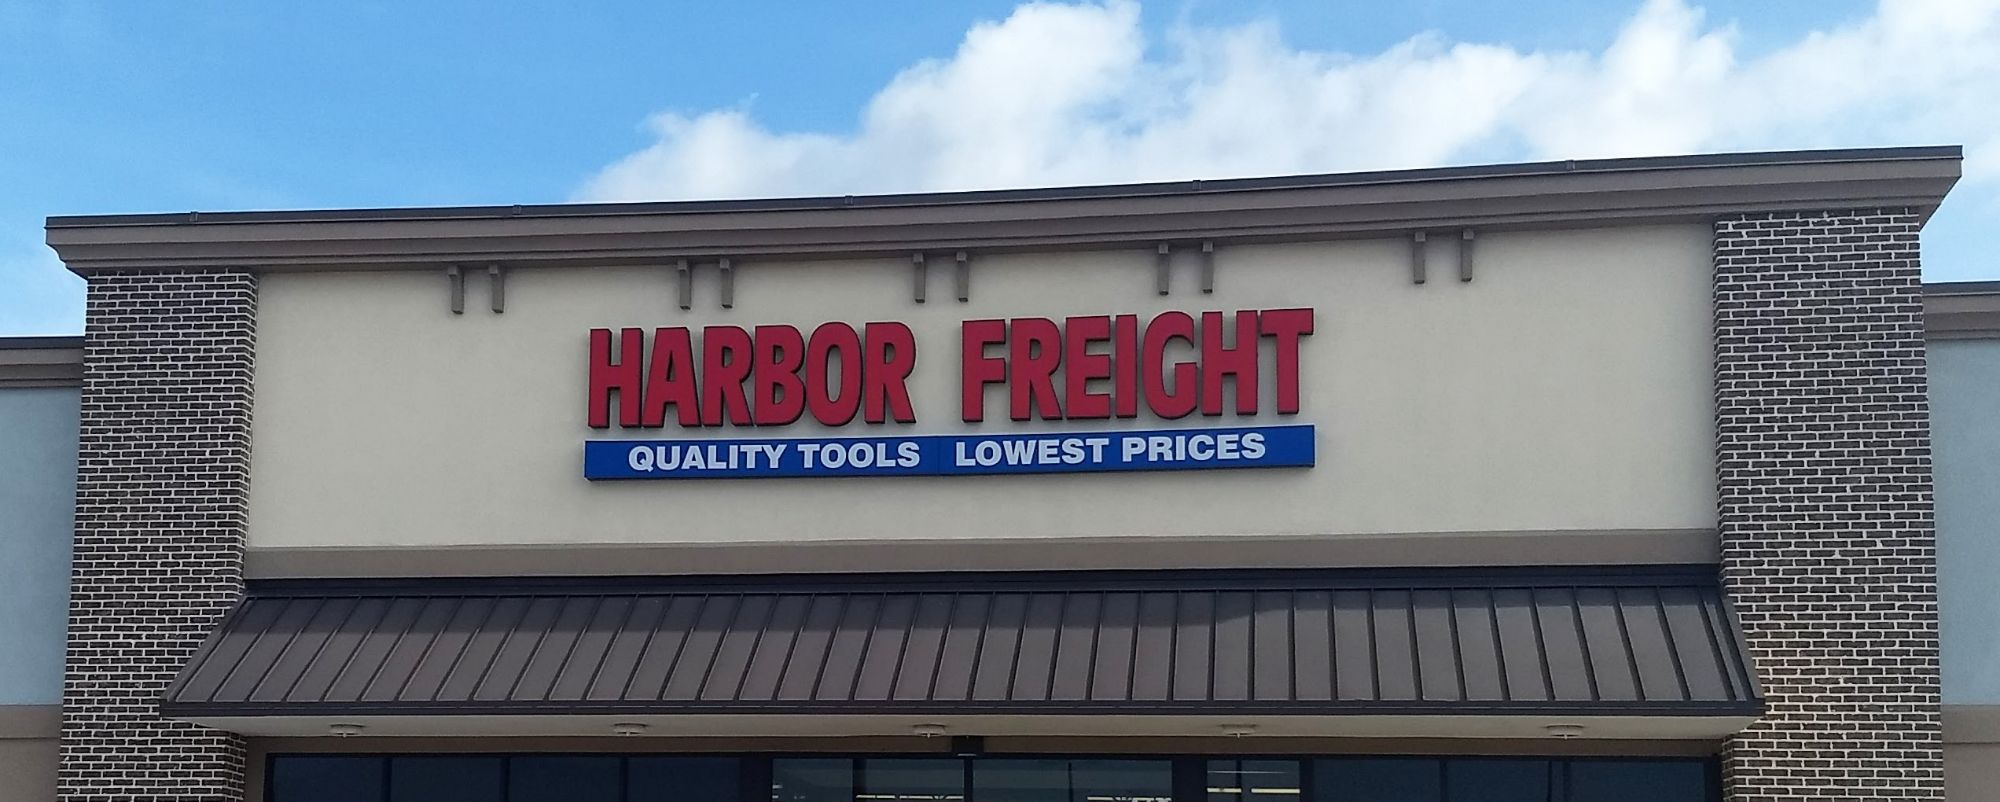 Cheapest Item at Harbor Freight